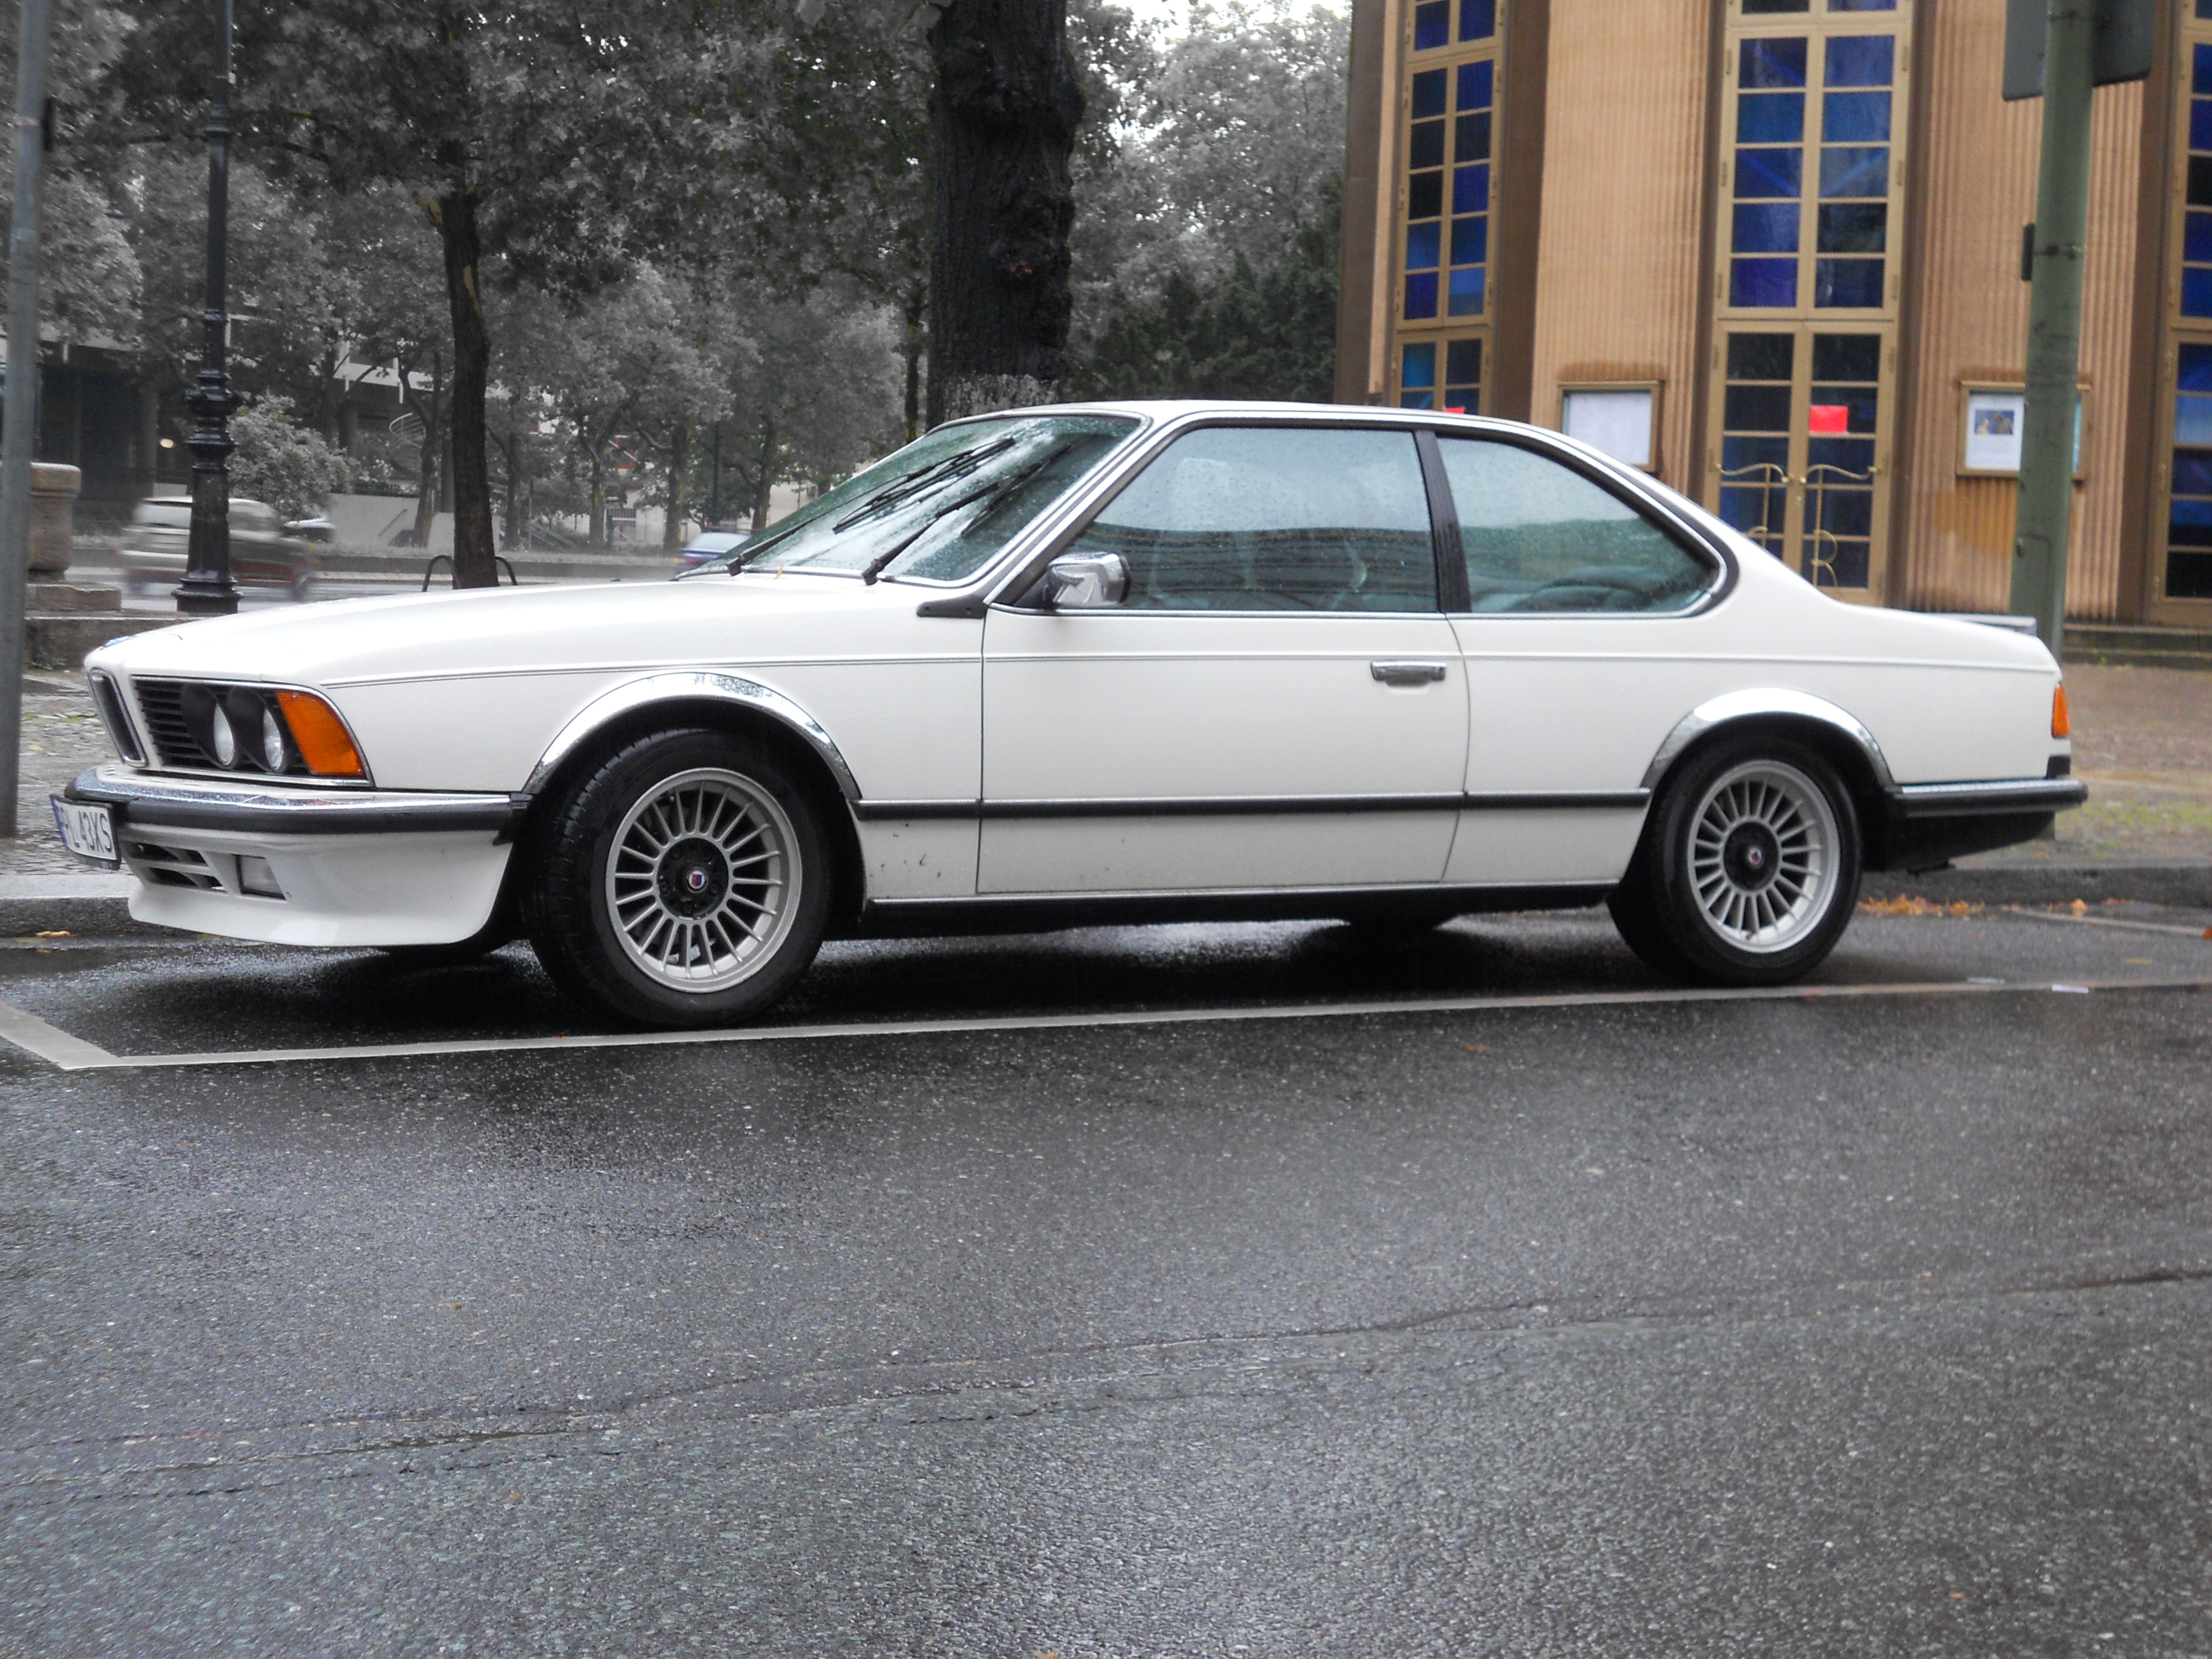 BMW 635 CSi E24 - white | Flickr - Photo Sharing!